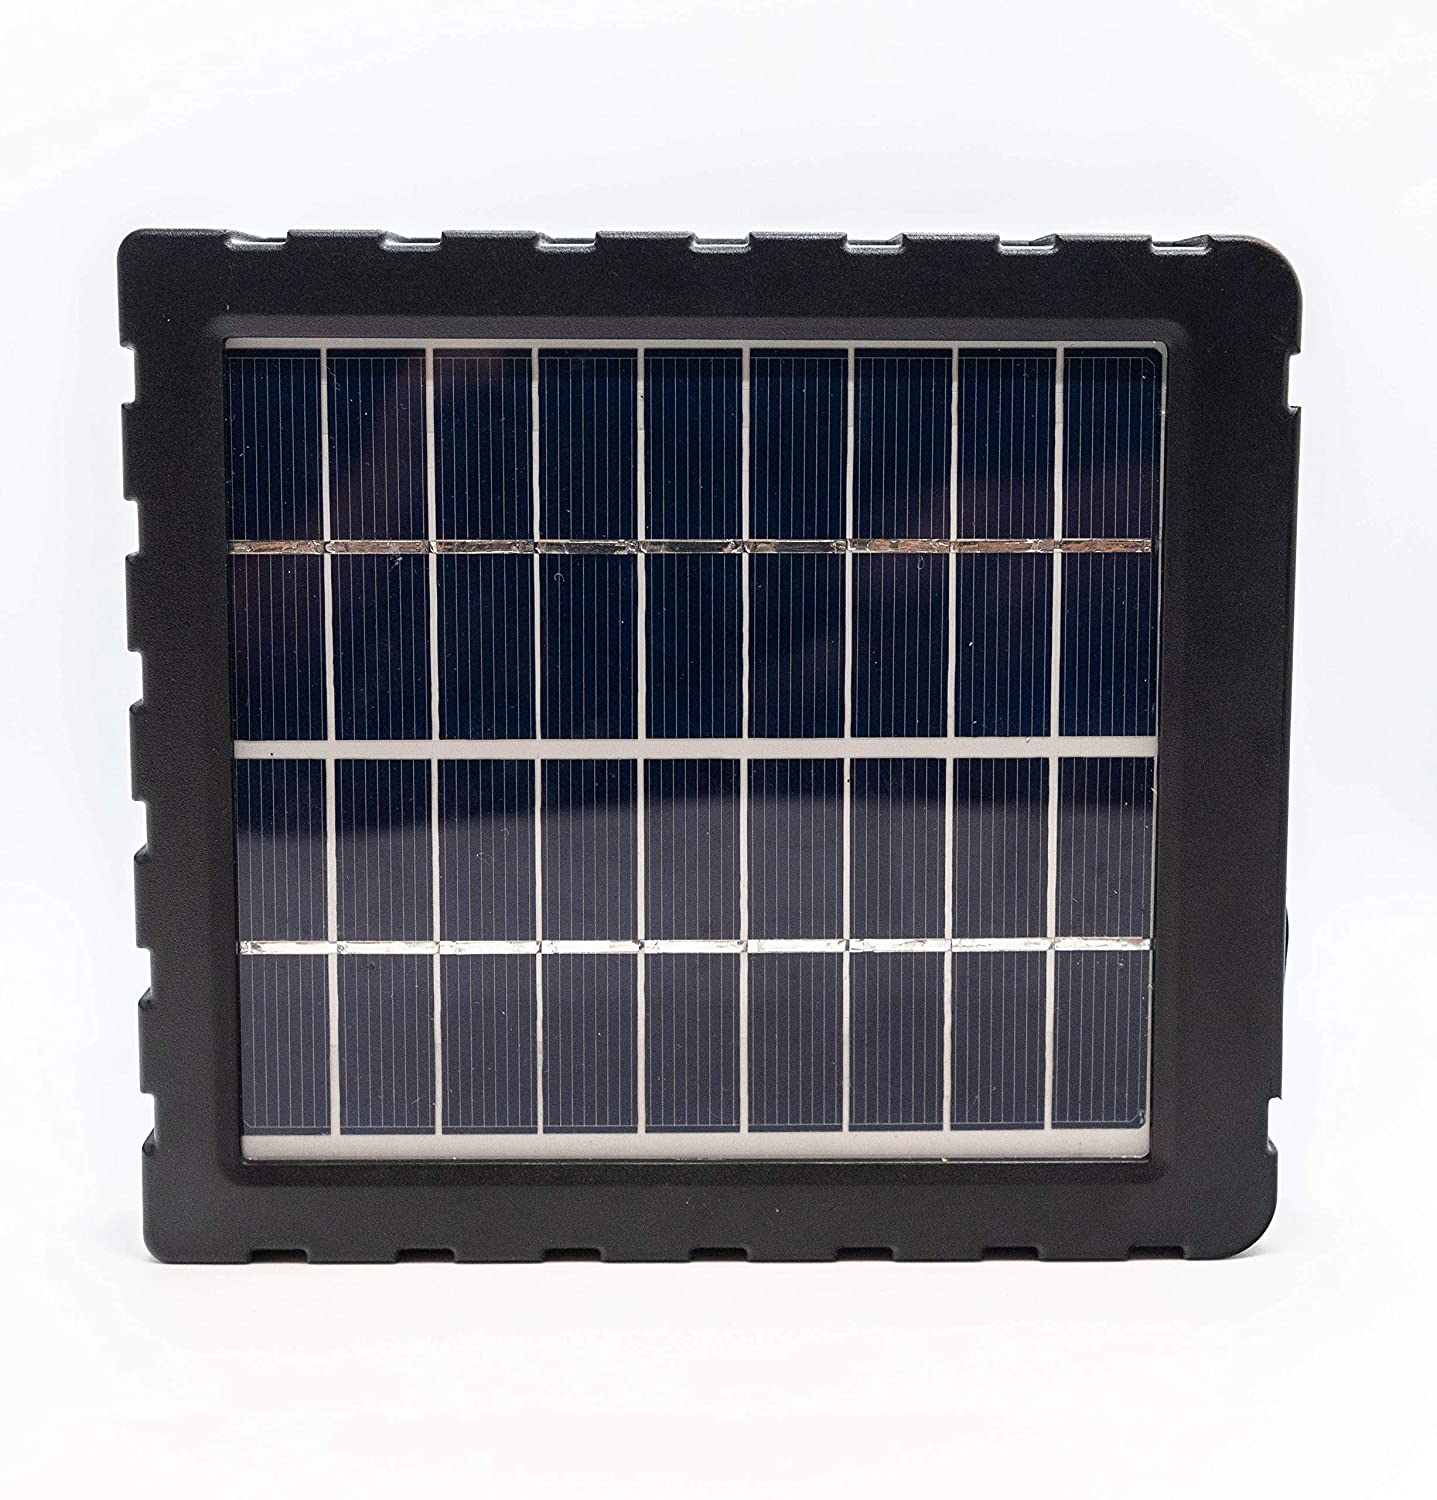 Exodus SP18 - 12V Solar Panel with Built In Rechargable Battery | Designed For use with All Exodus Trail Camera Models | Perfect External Battery for Trail Cameras, Game Cameras, Feeders, and Other Electronic Devices with Compatible Connection